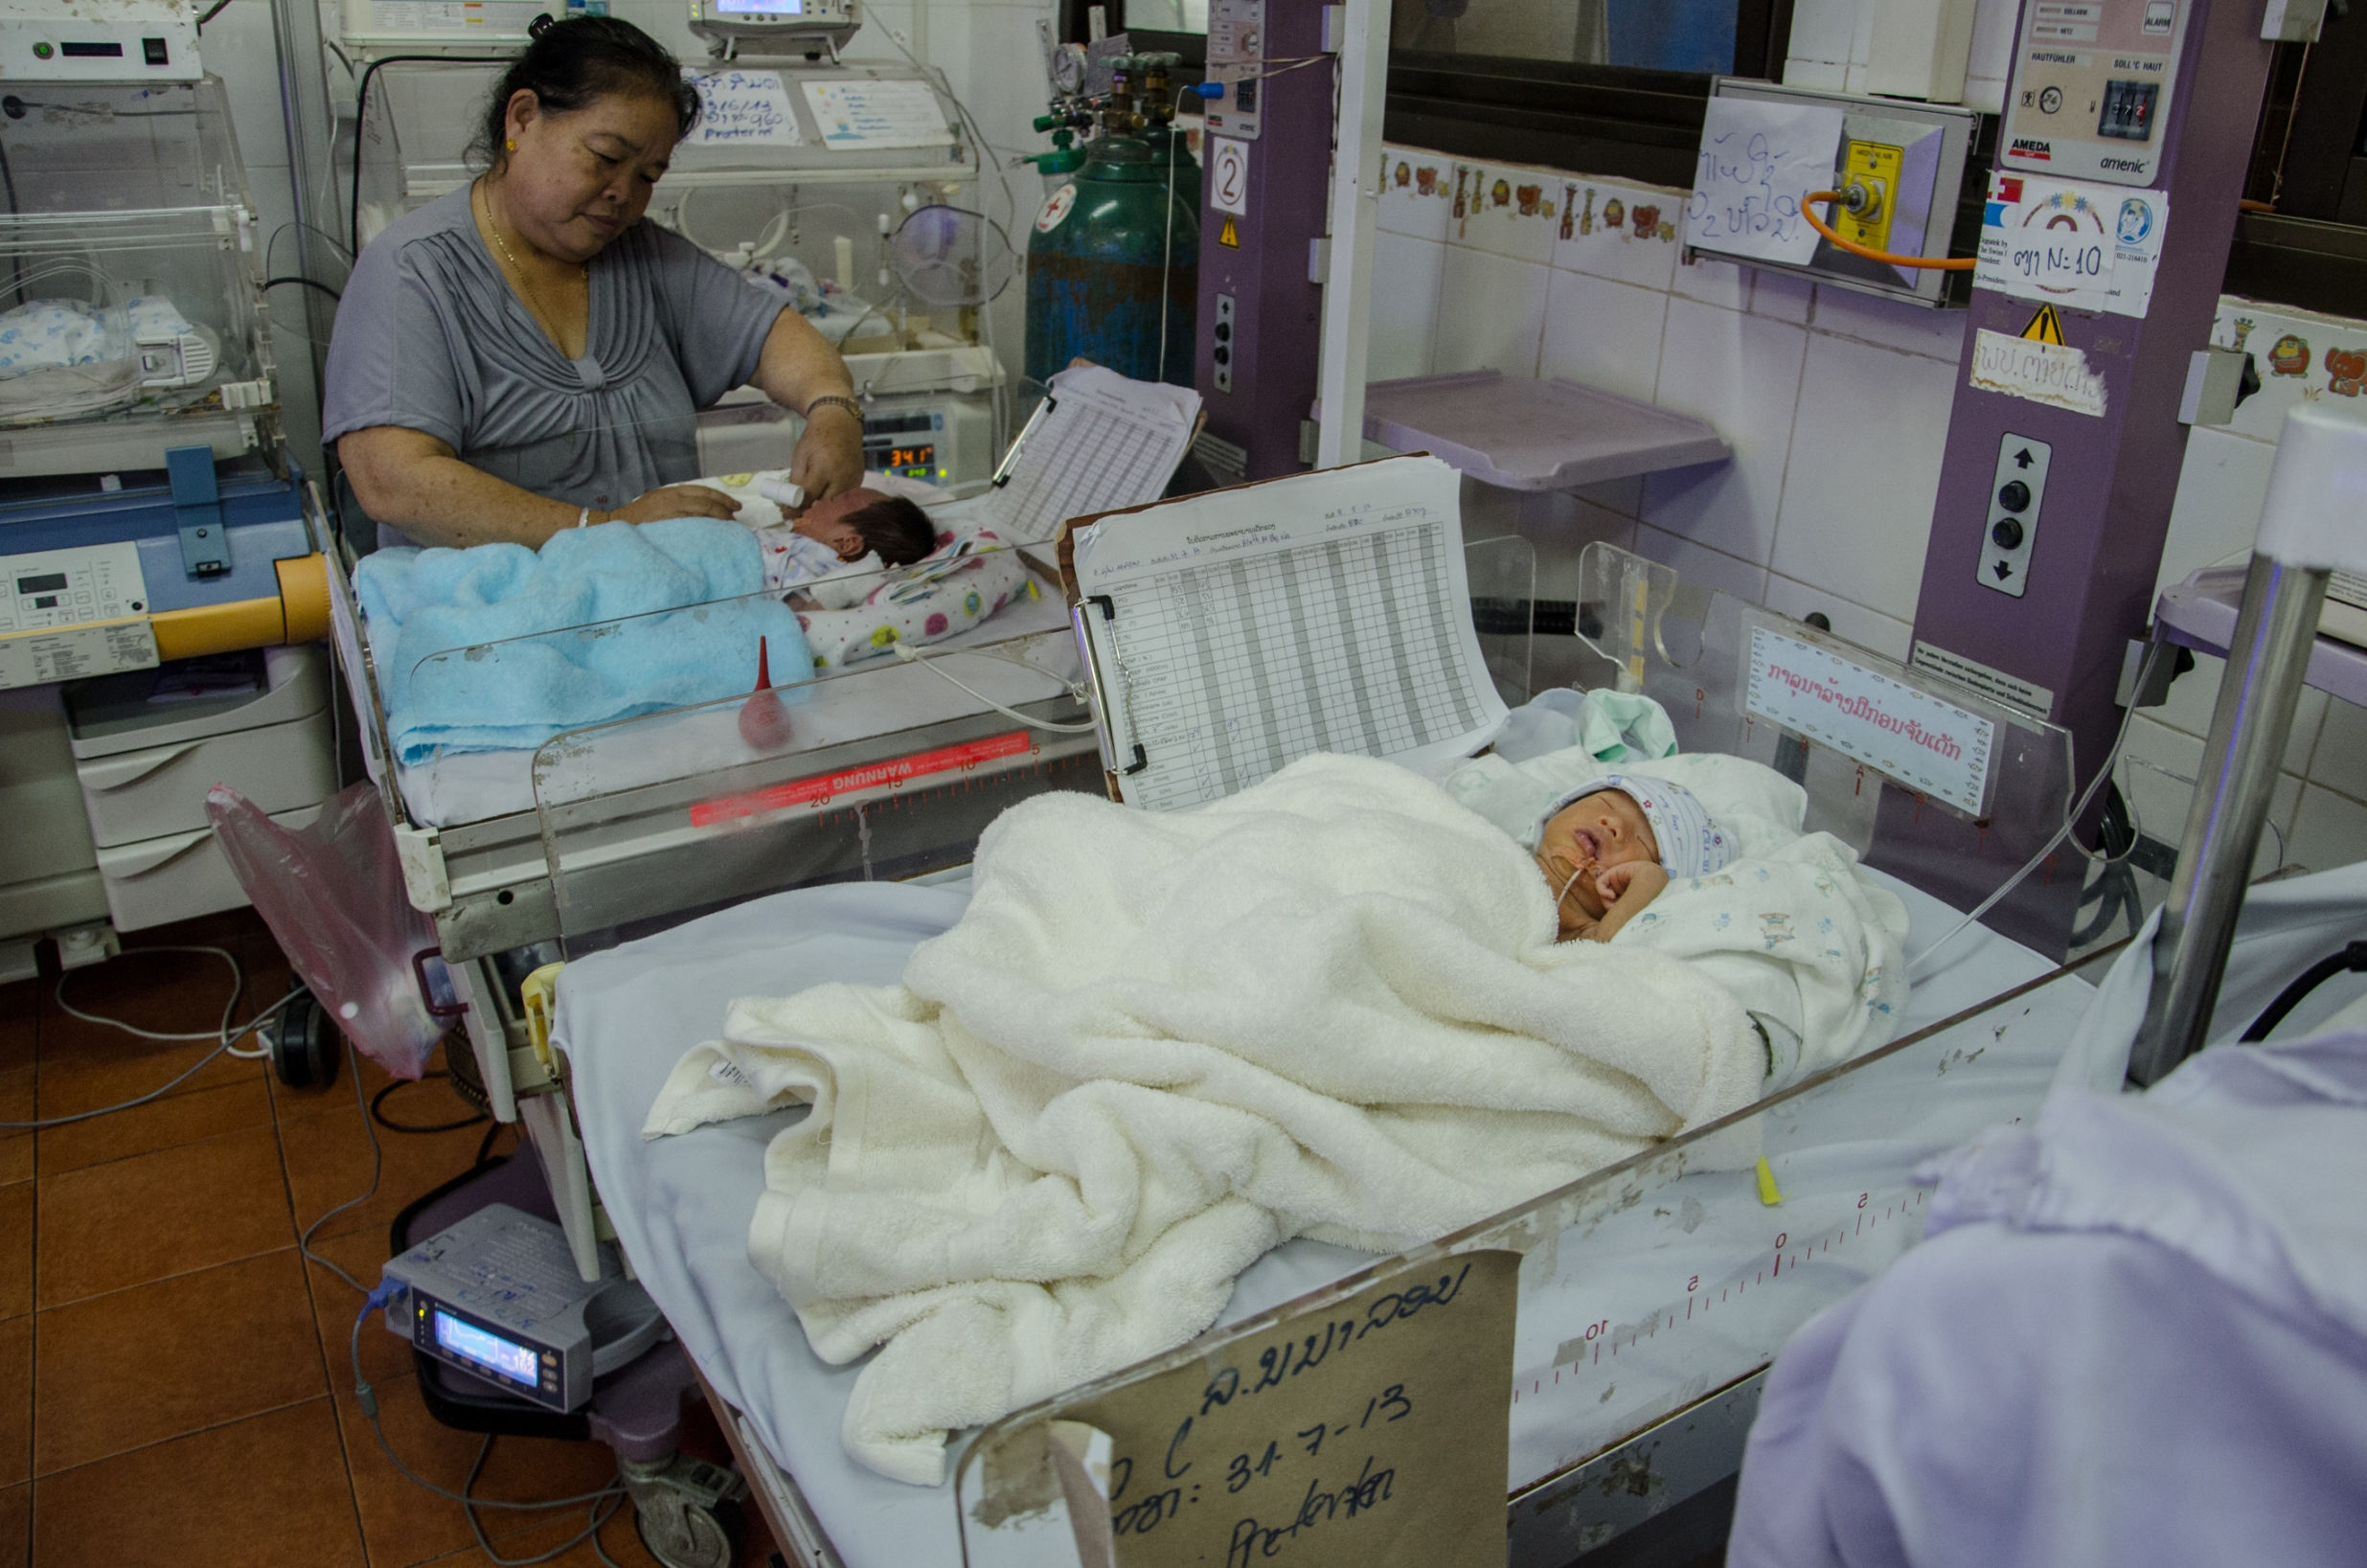 Children in Laos face a higher chance of infant mortality than elsewhere in the world due to maternal, child and reproductive health care gaps